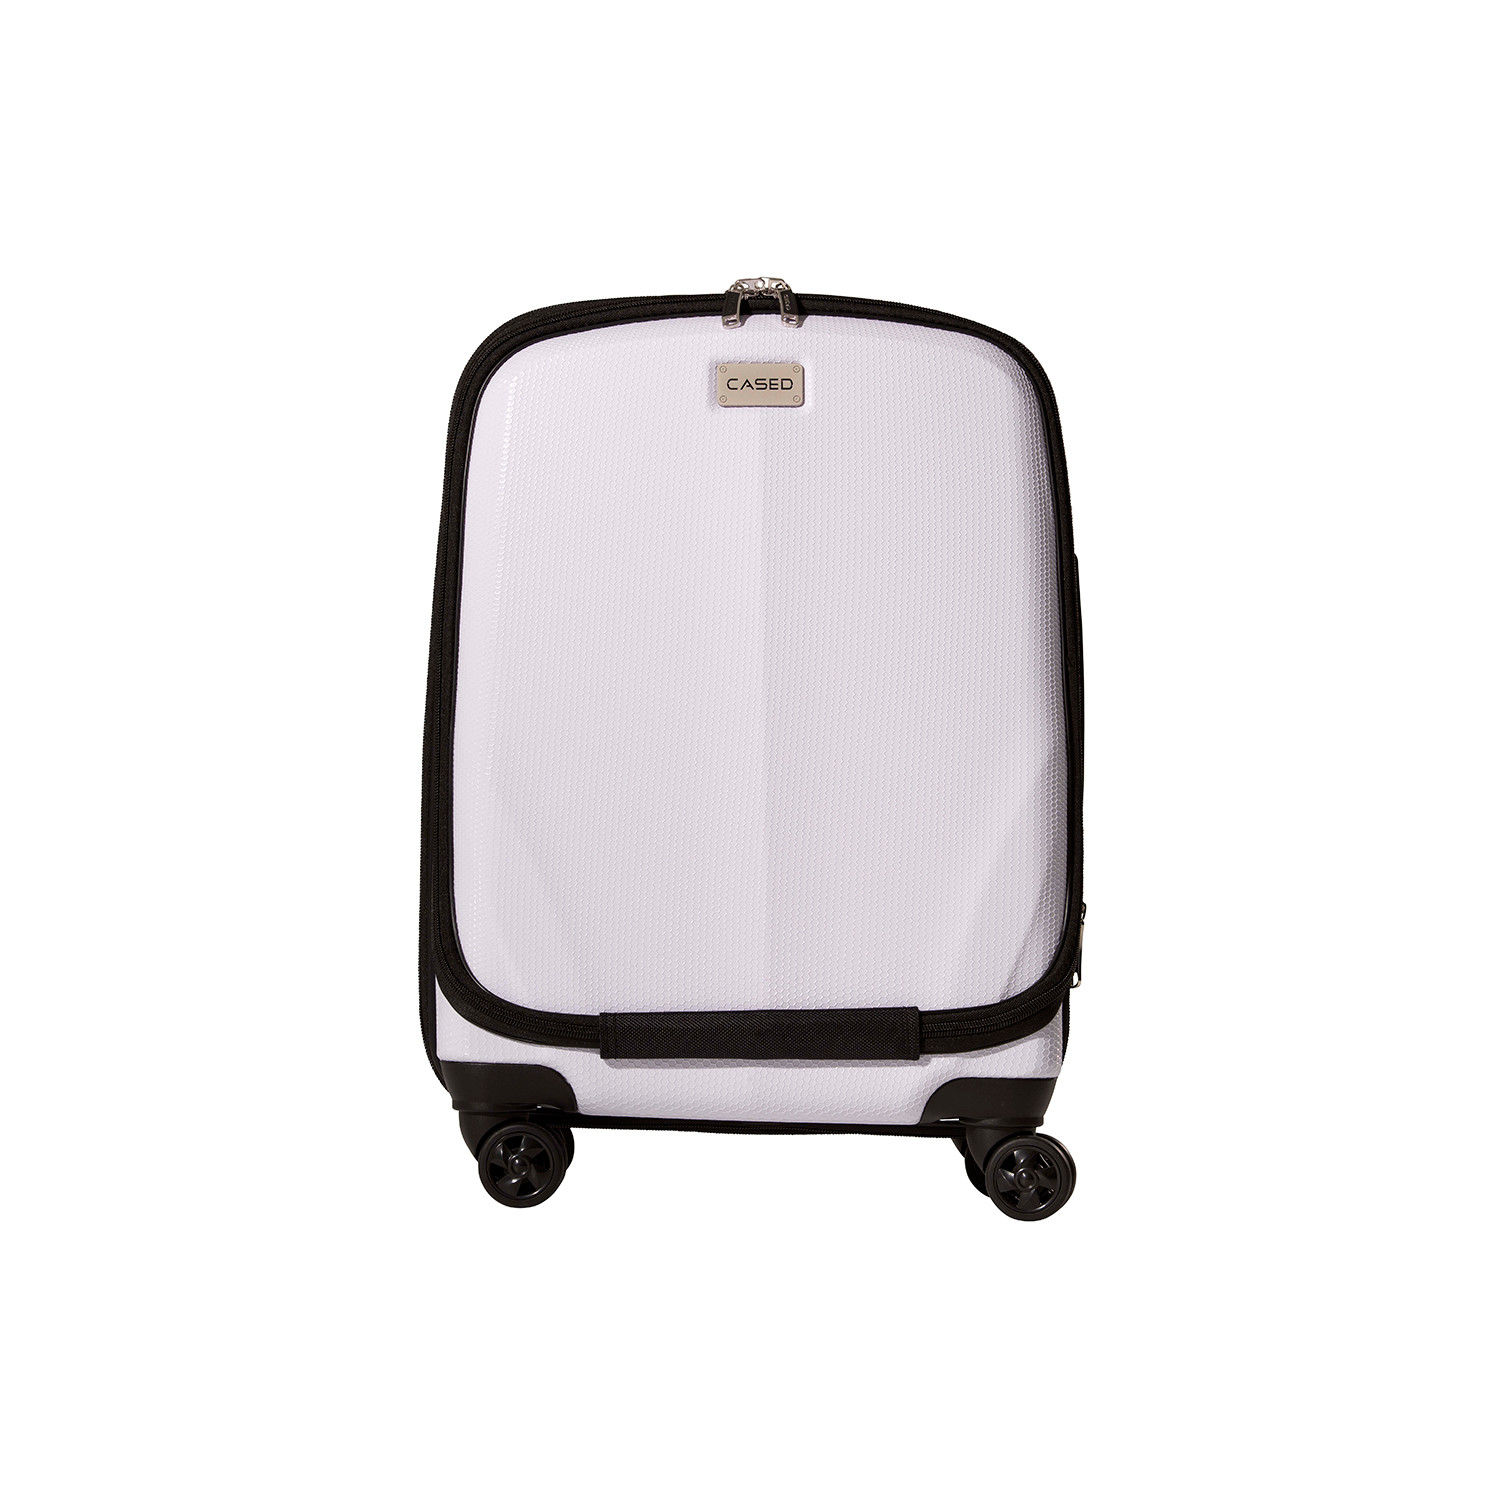 Cased Luggage White 22 Quot Carry On Cased Luggage